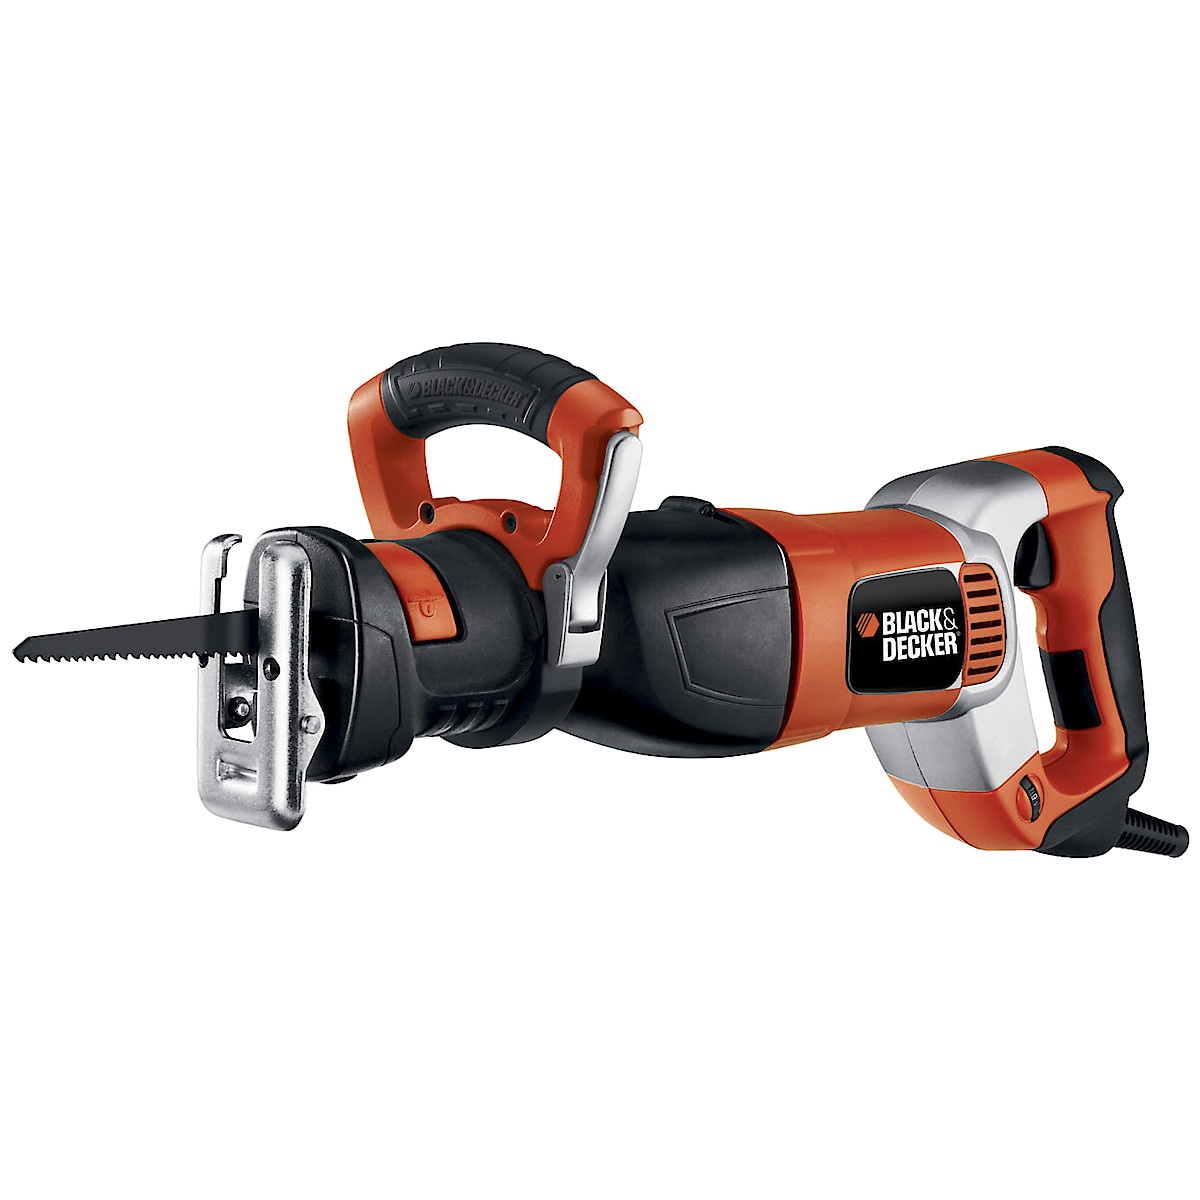 Black & Decker RS1050EK Reciprocating Saw